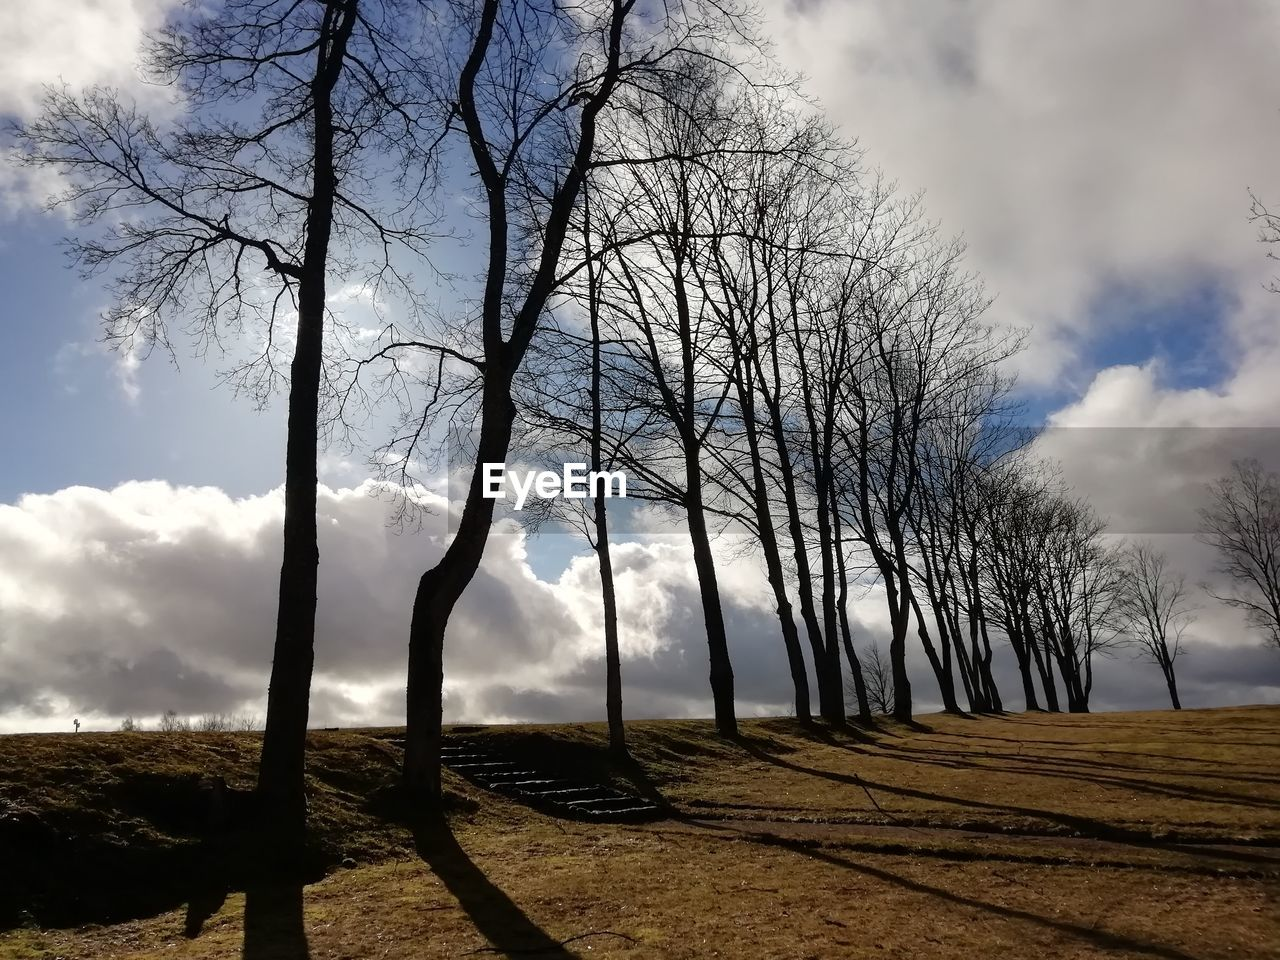 tree, sky, bare tree, cloud - sky, plant, beauty in nature, nature, tranquility, branch, land, scenics - nature, landscape, no people, field, tranquil scene, environment, non-urban scene, tree trunk, trunk, outdoors